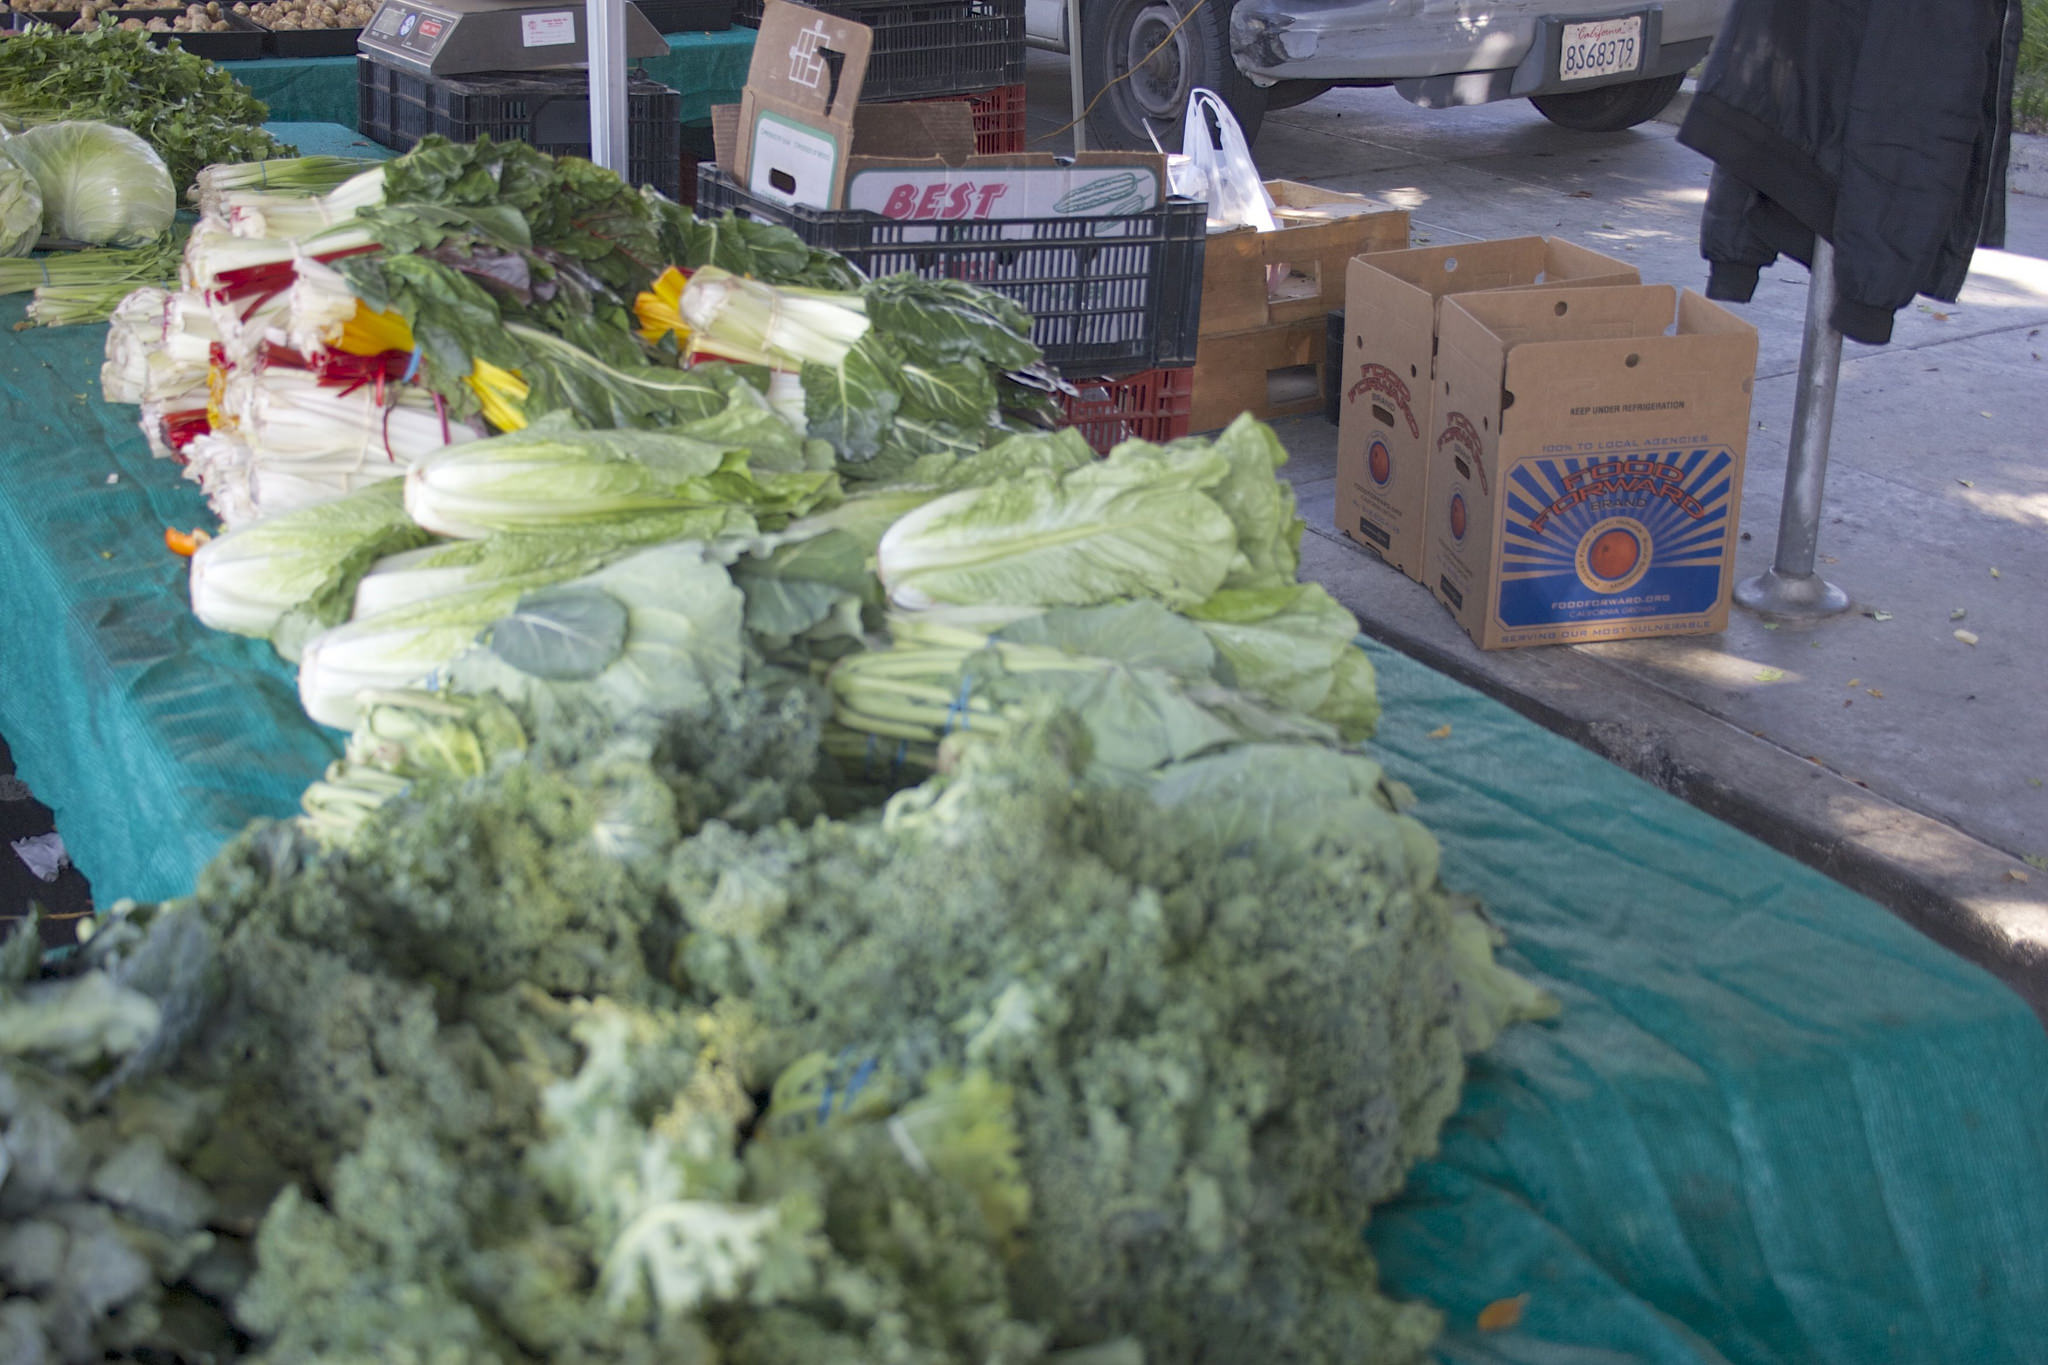 A table full of veggies at the farmers market